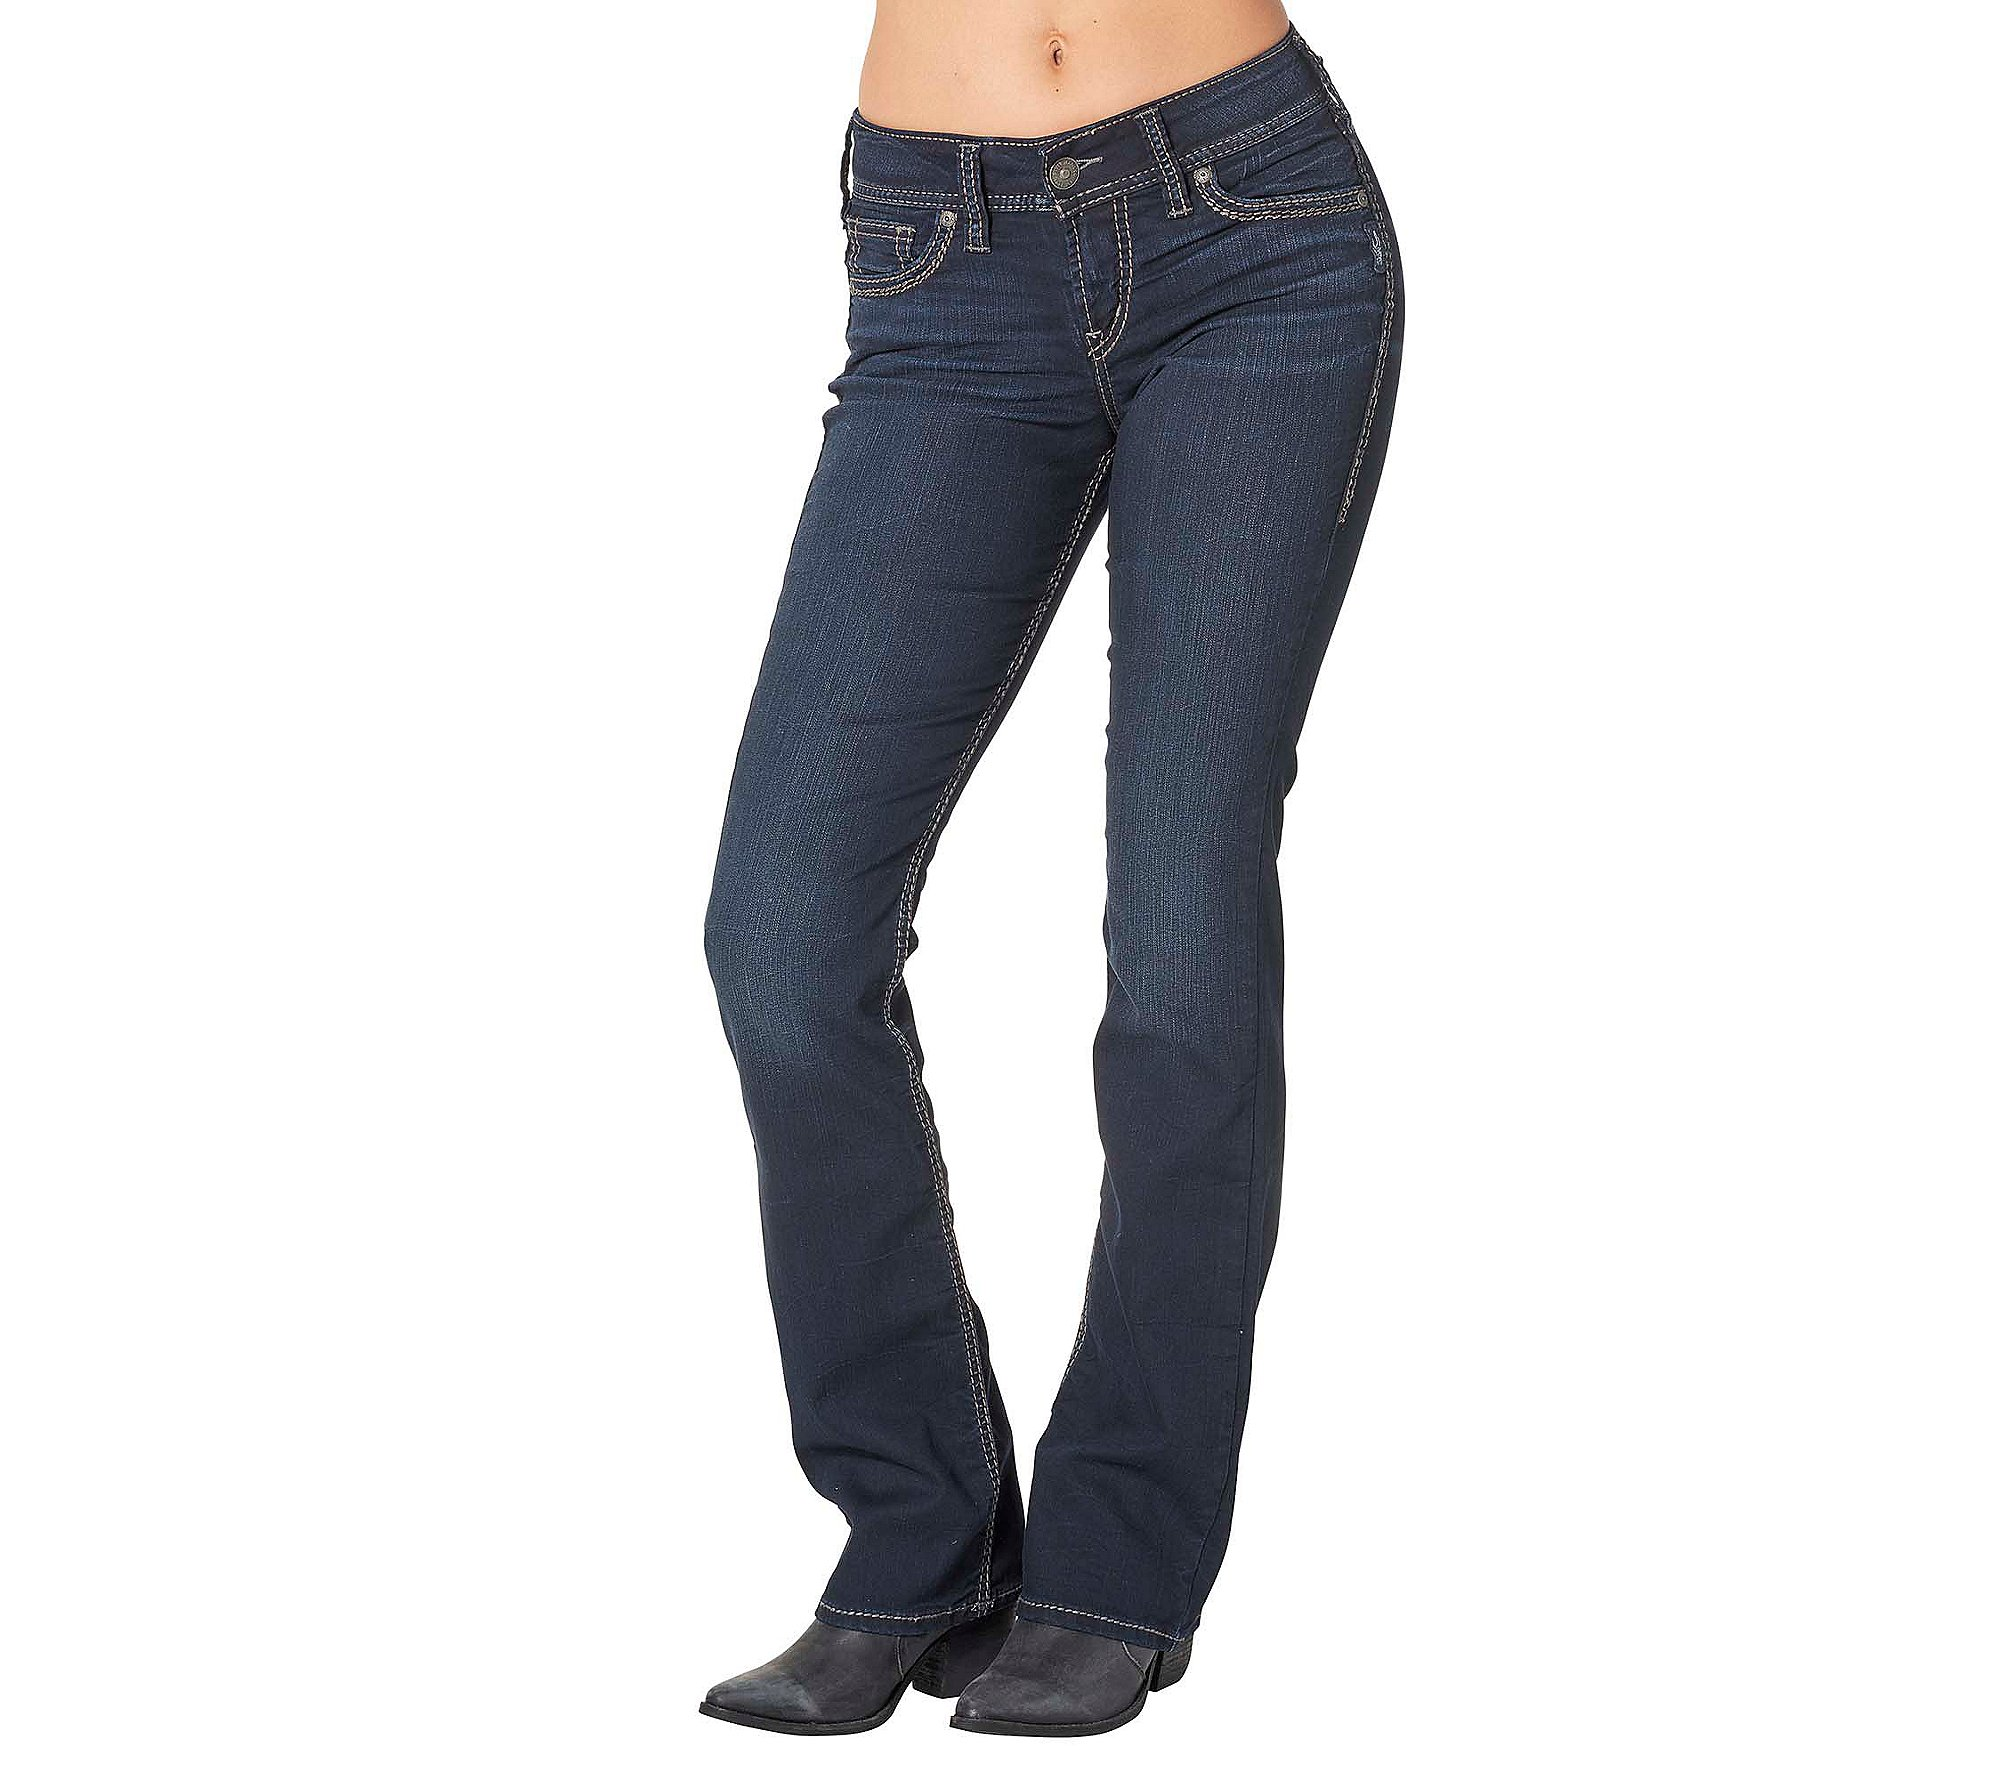 Silver Jeans Co. Suki Mid Slim Boot Jeans 24